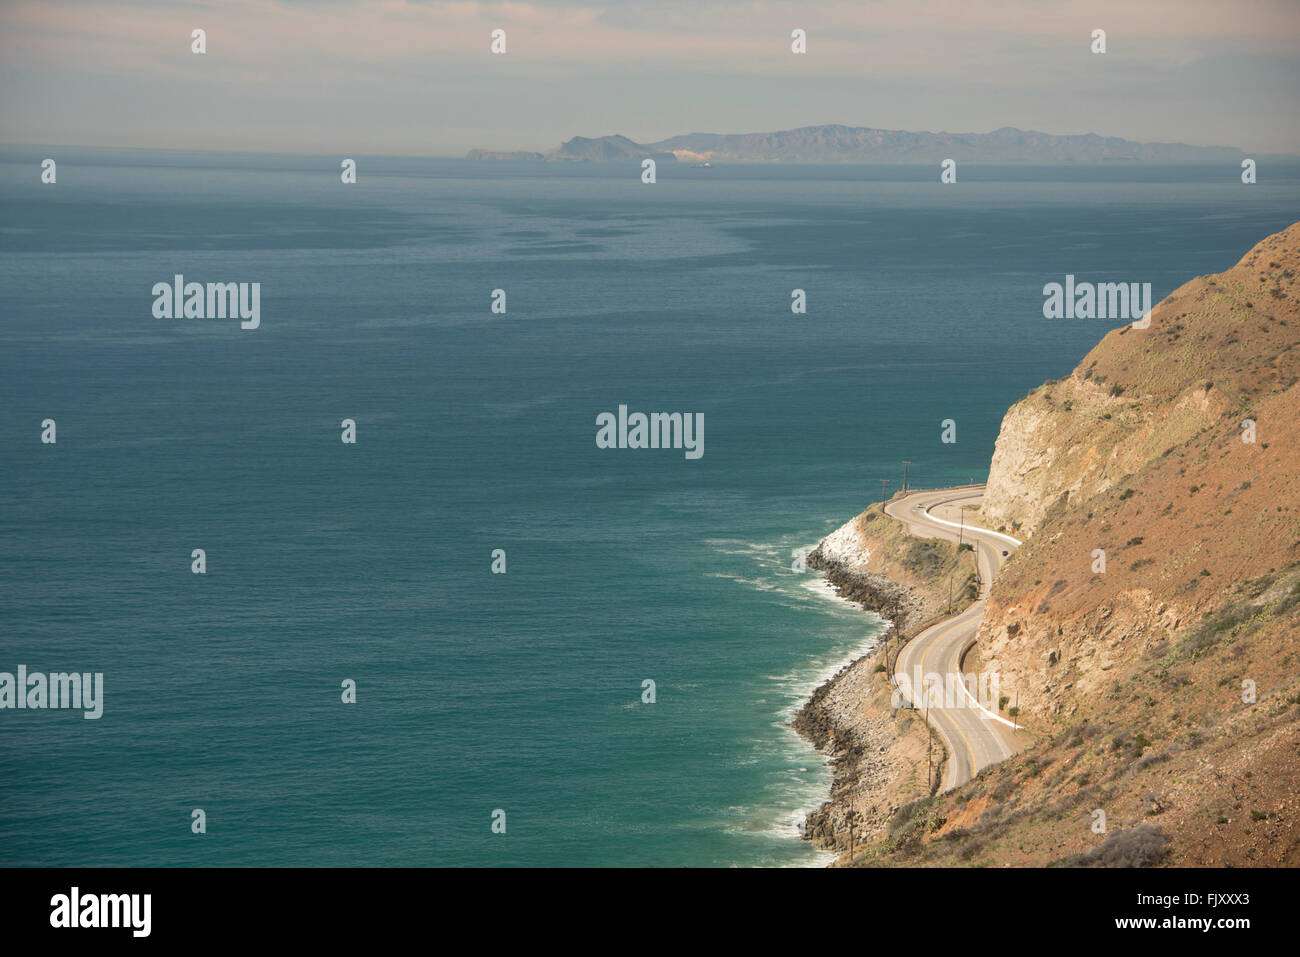 View of Pacific Coast Highway PCH Route 1 north of Los Angeles along the Pacific Ocean coast of Southern California - Stock Image